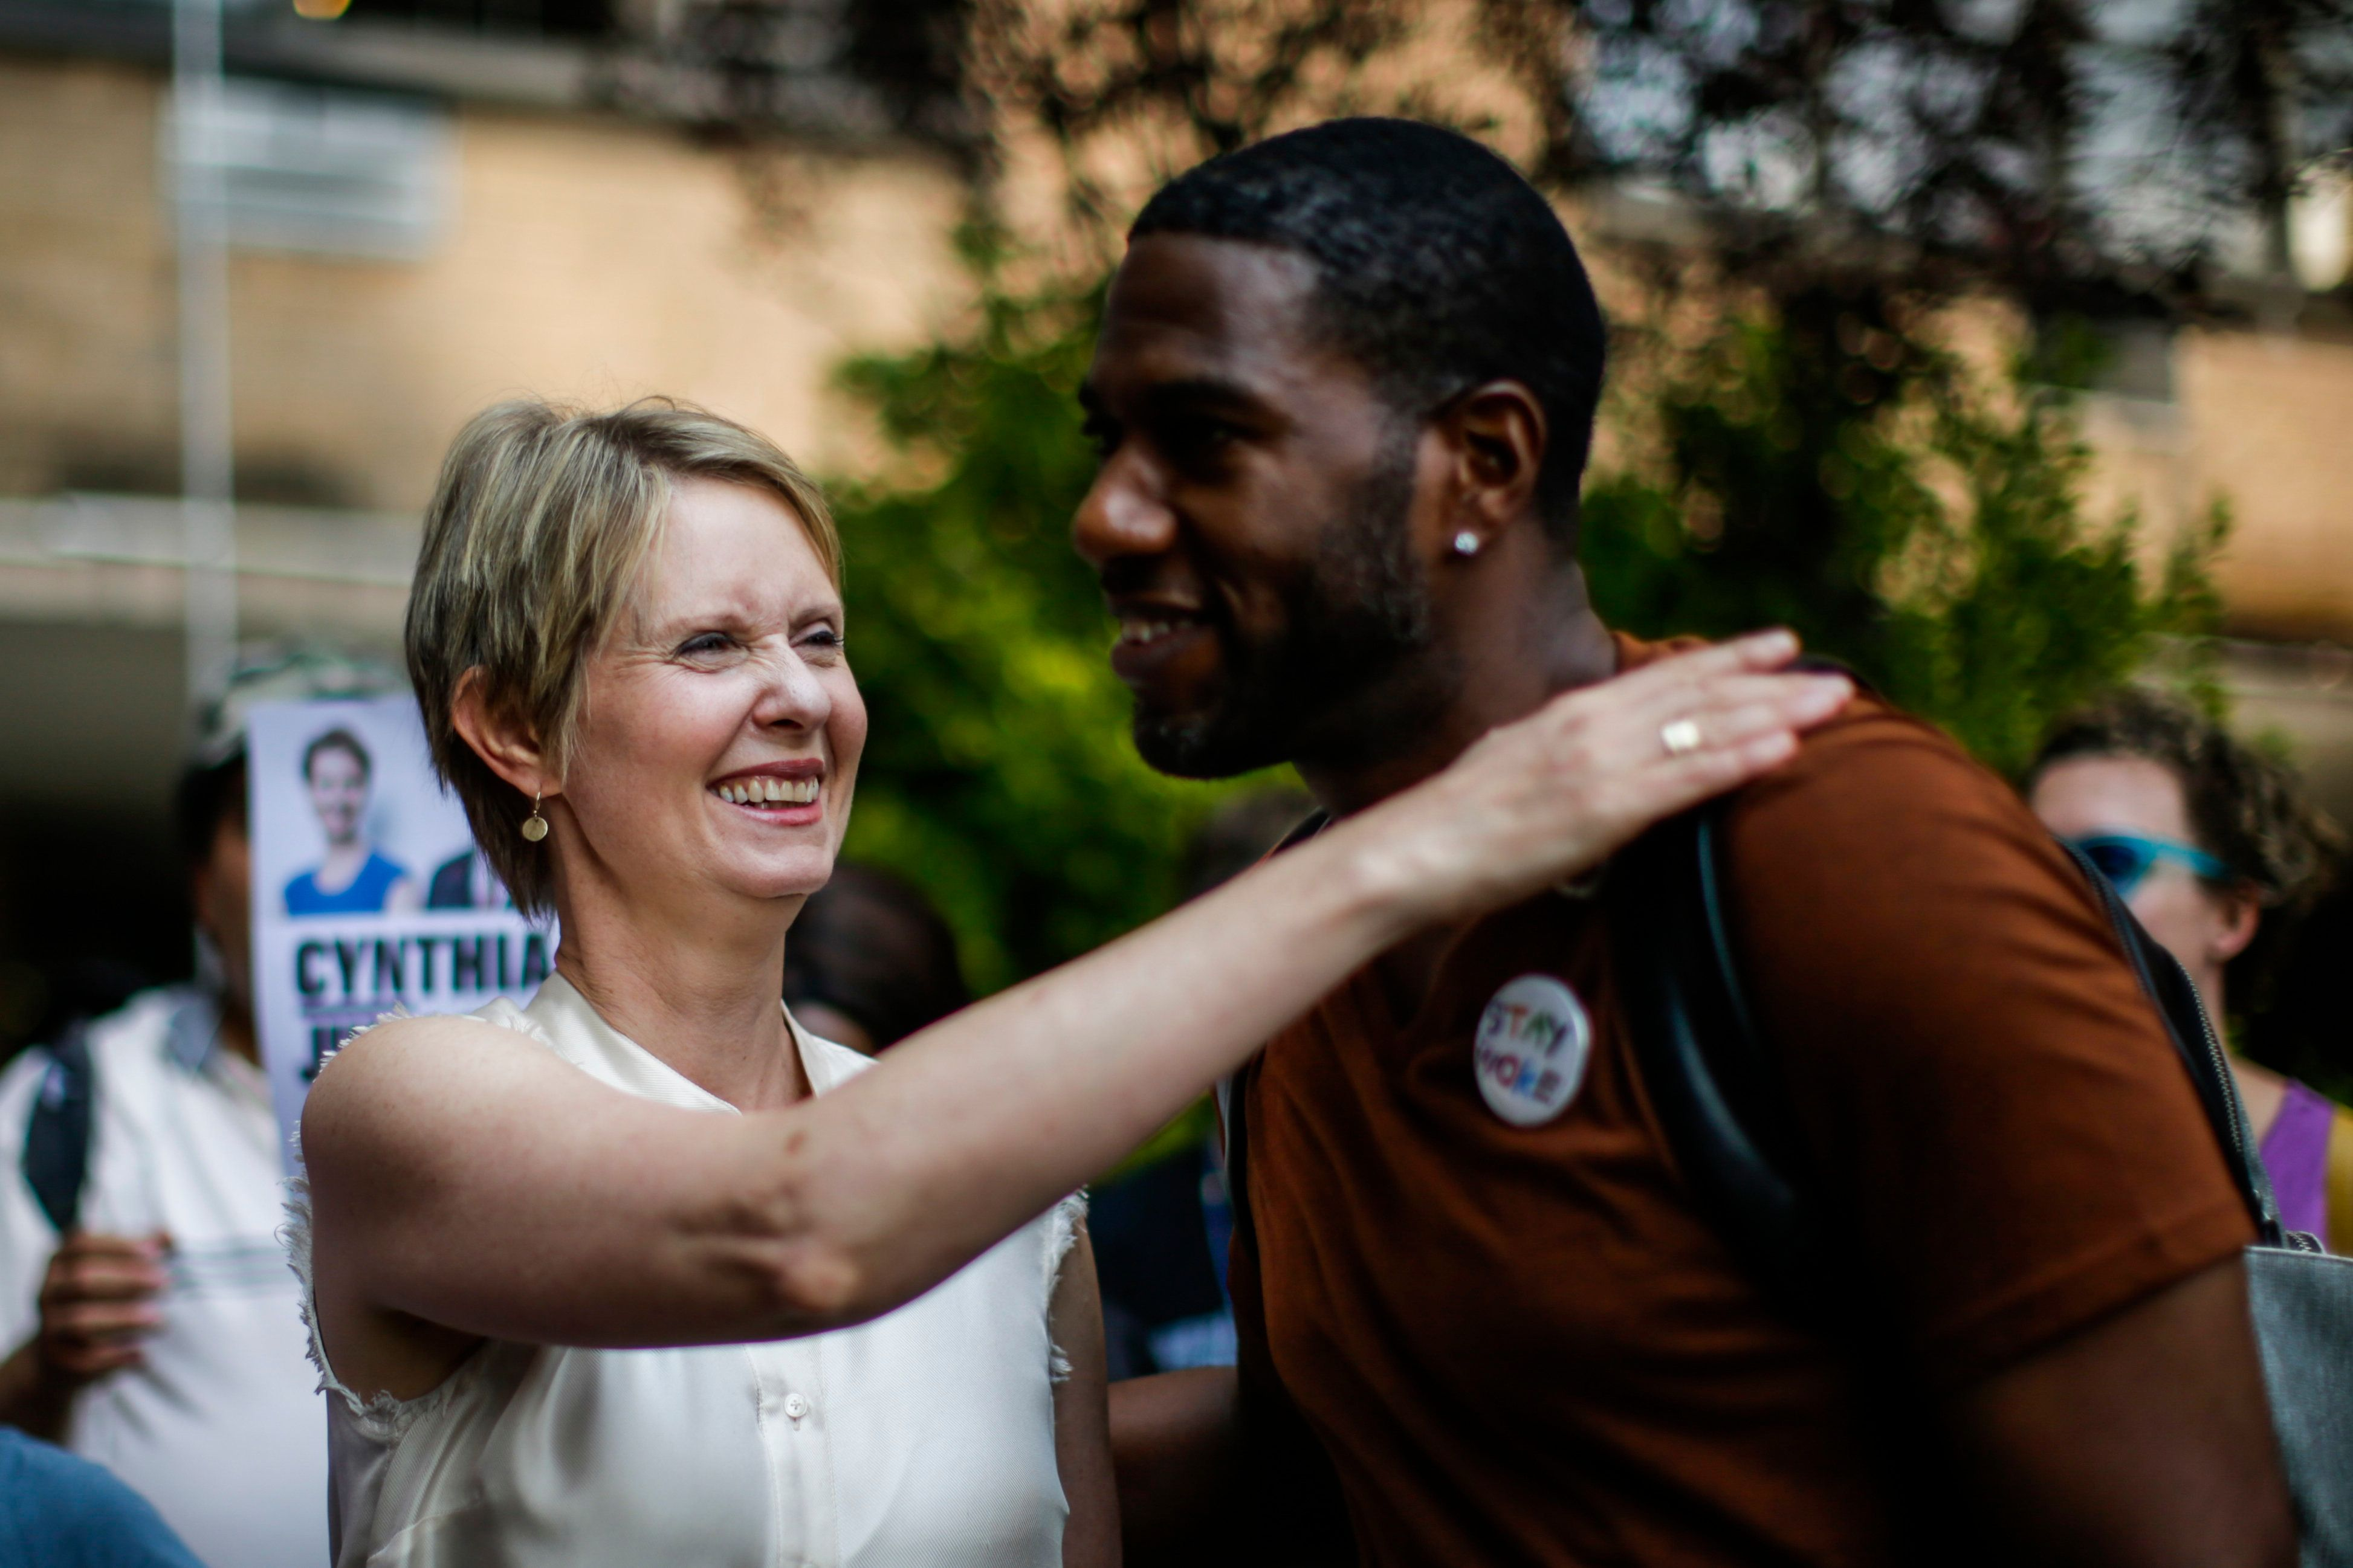 Cynthia Nixon Needs Black Voters. She's Trying. It May Not Be Enough.